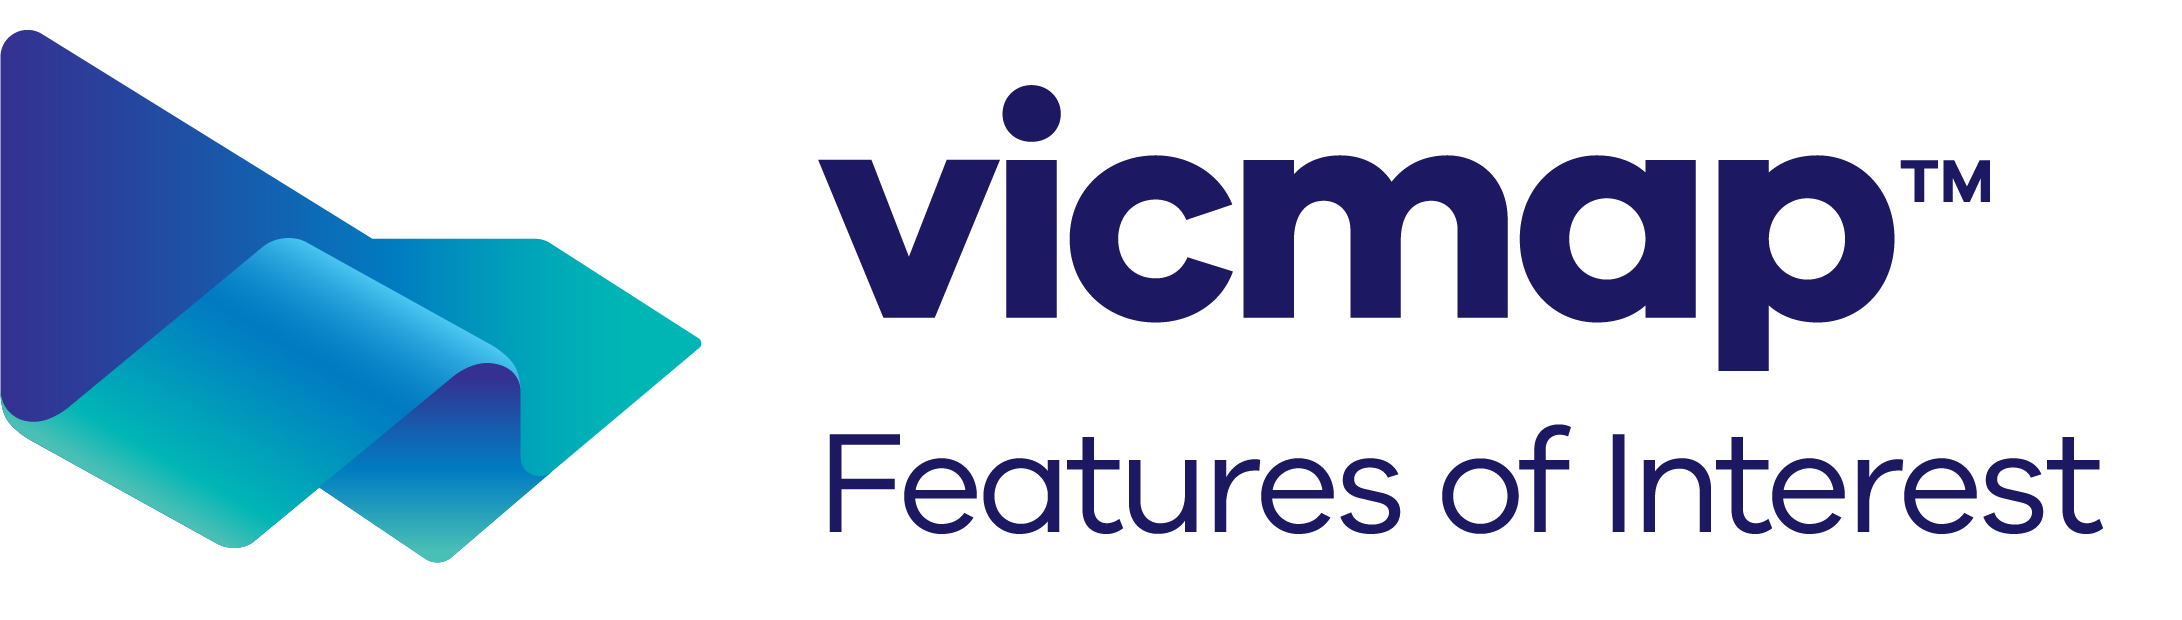 Vicmap Features of Interest logo